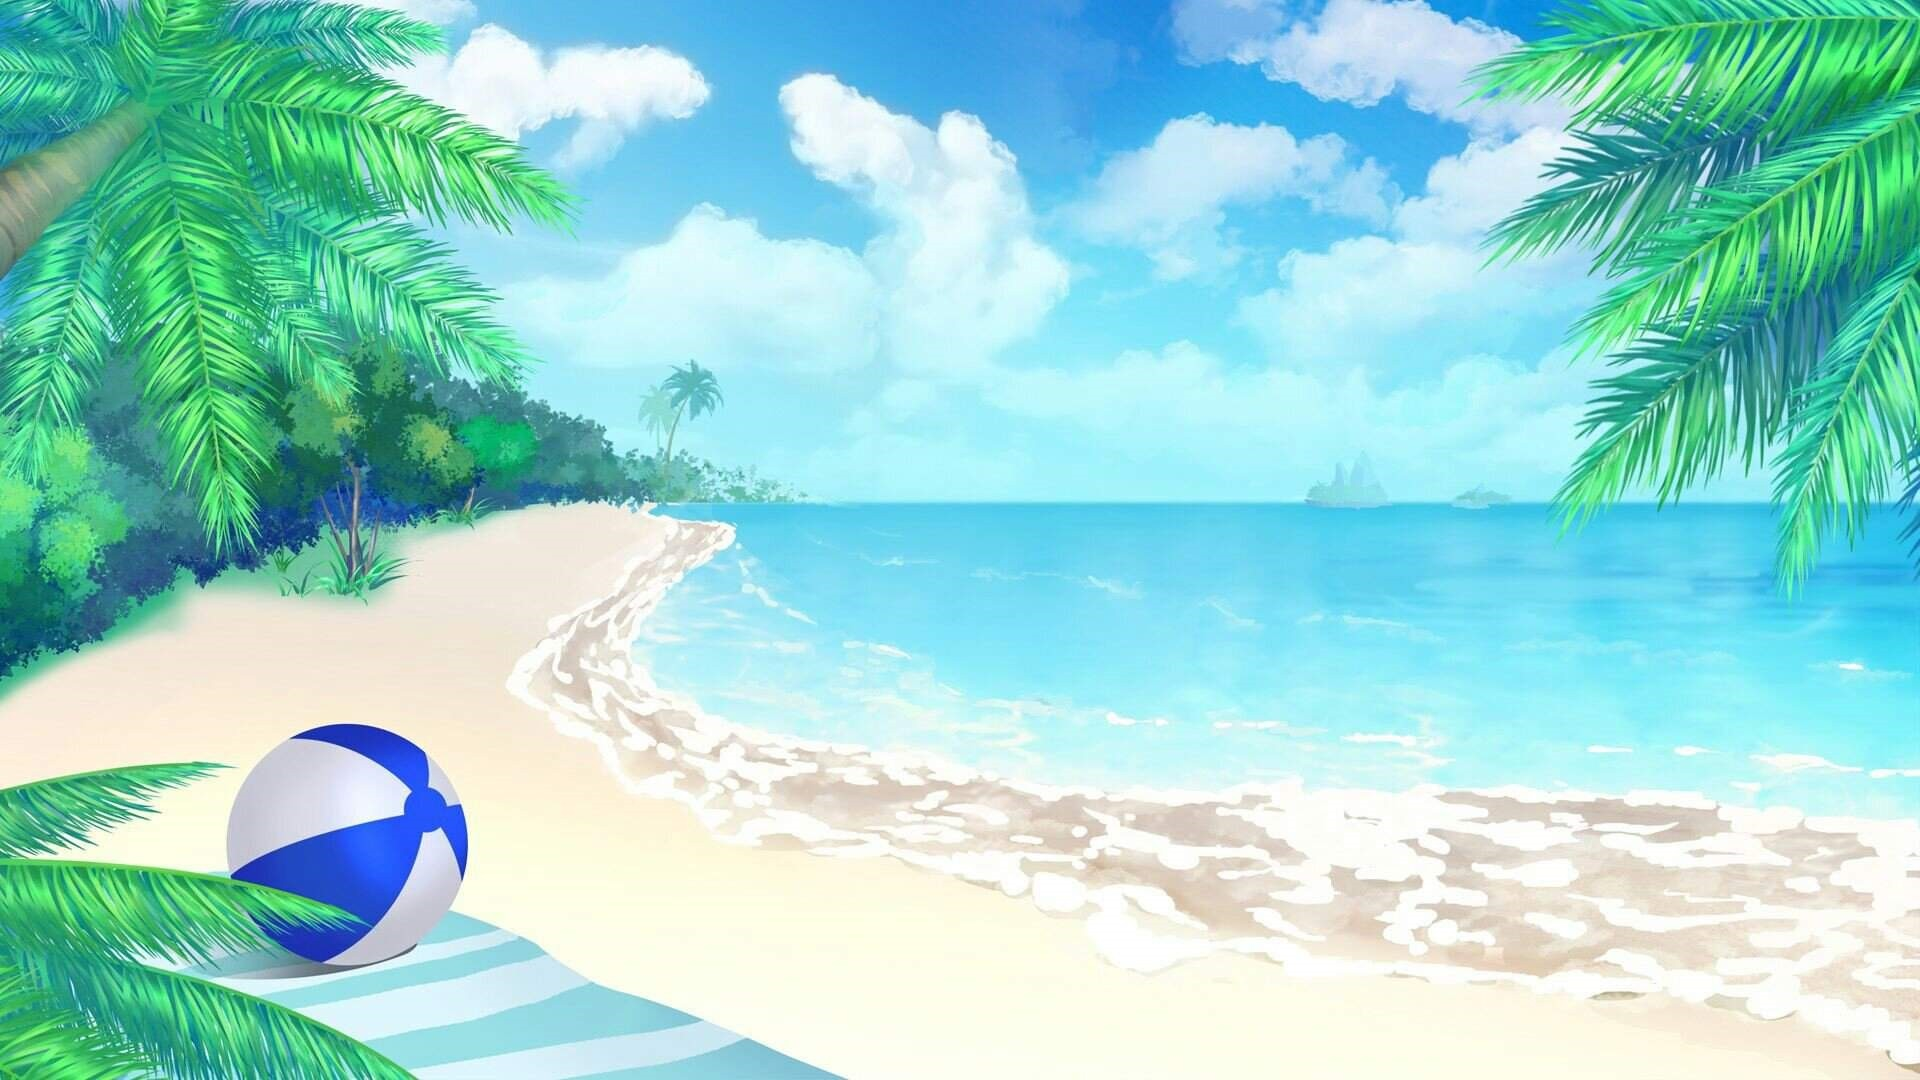 Anime Beach Picture